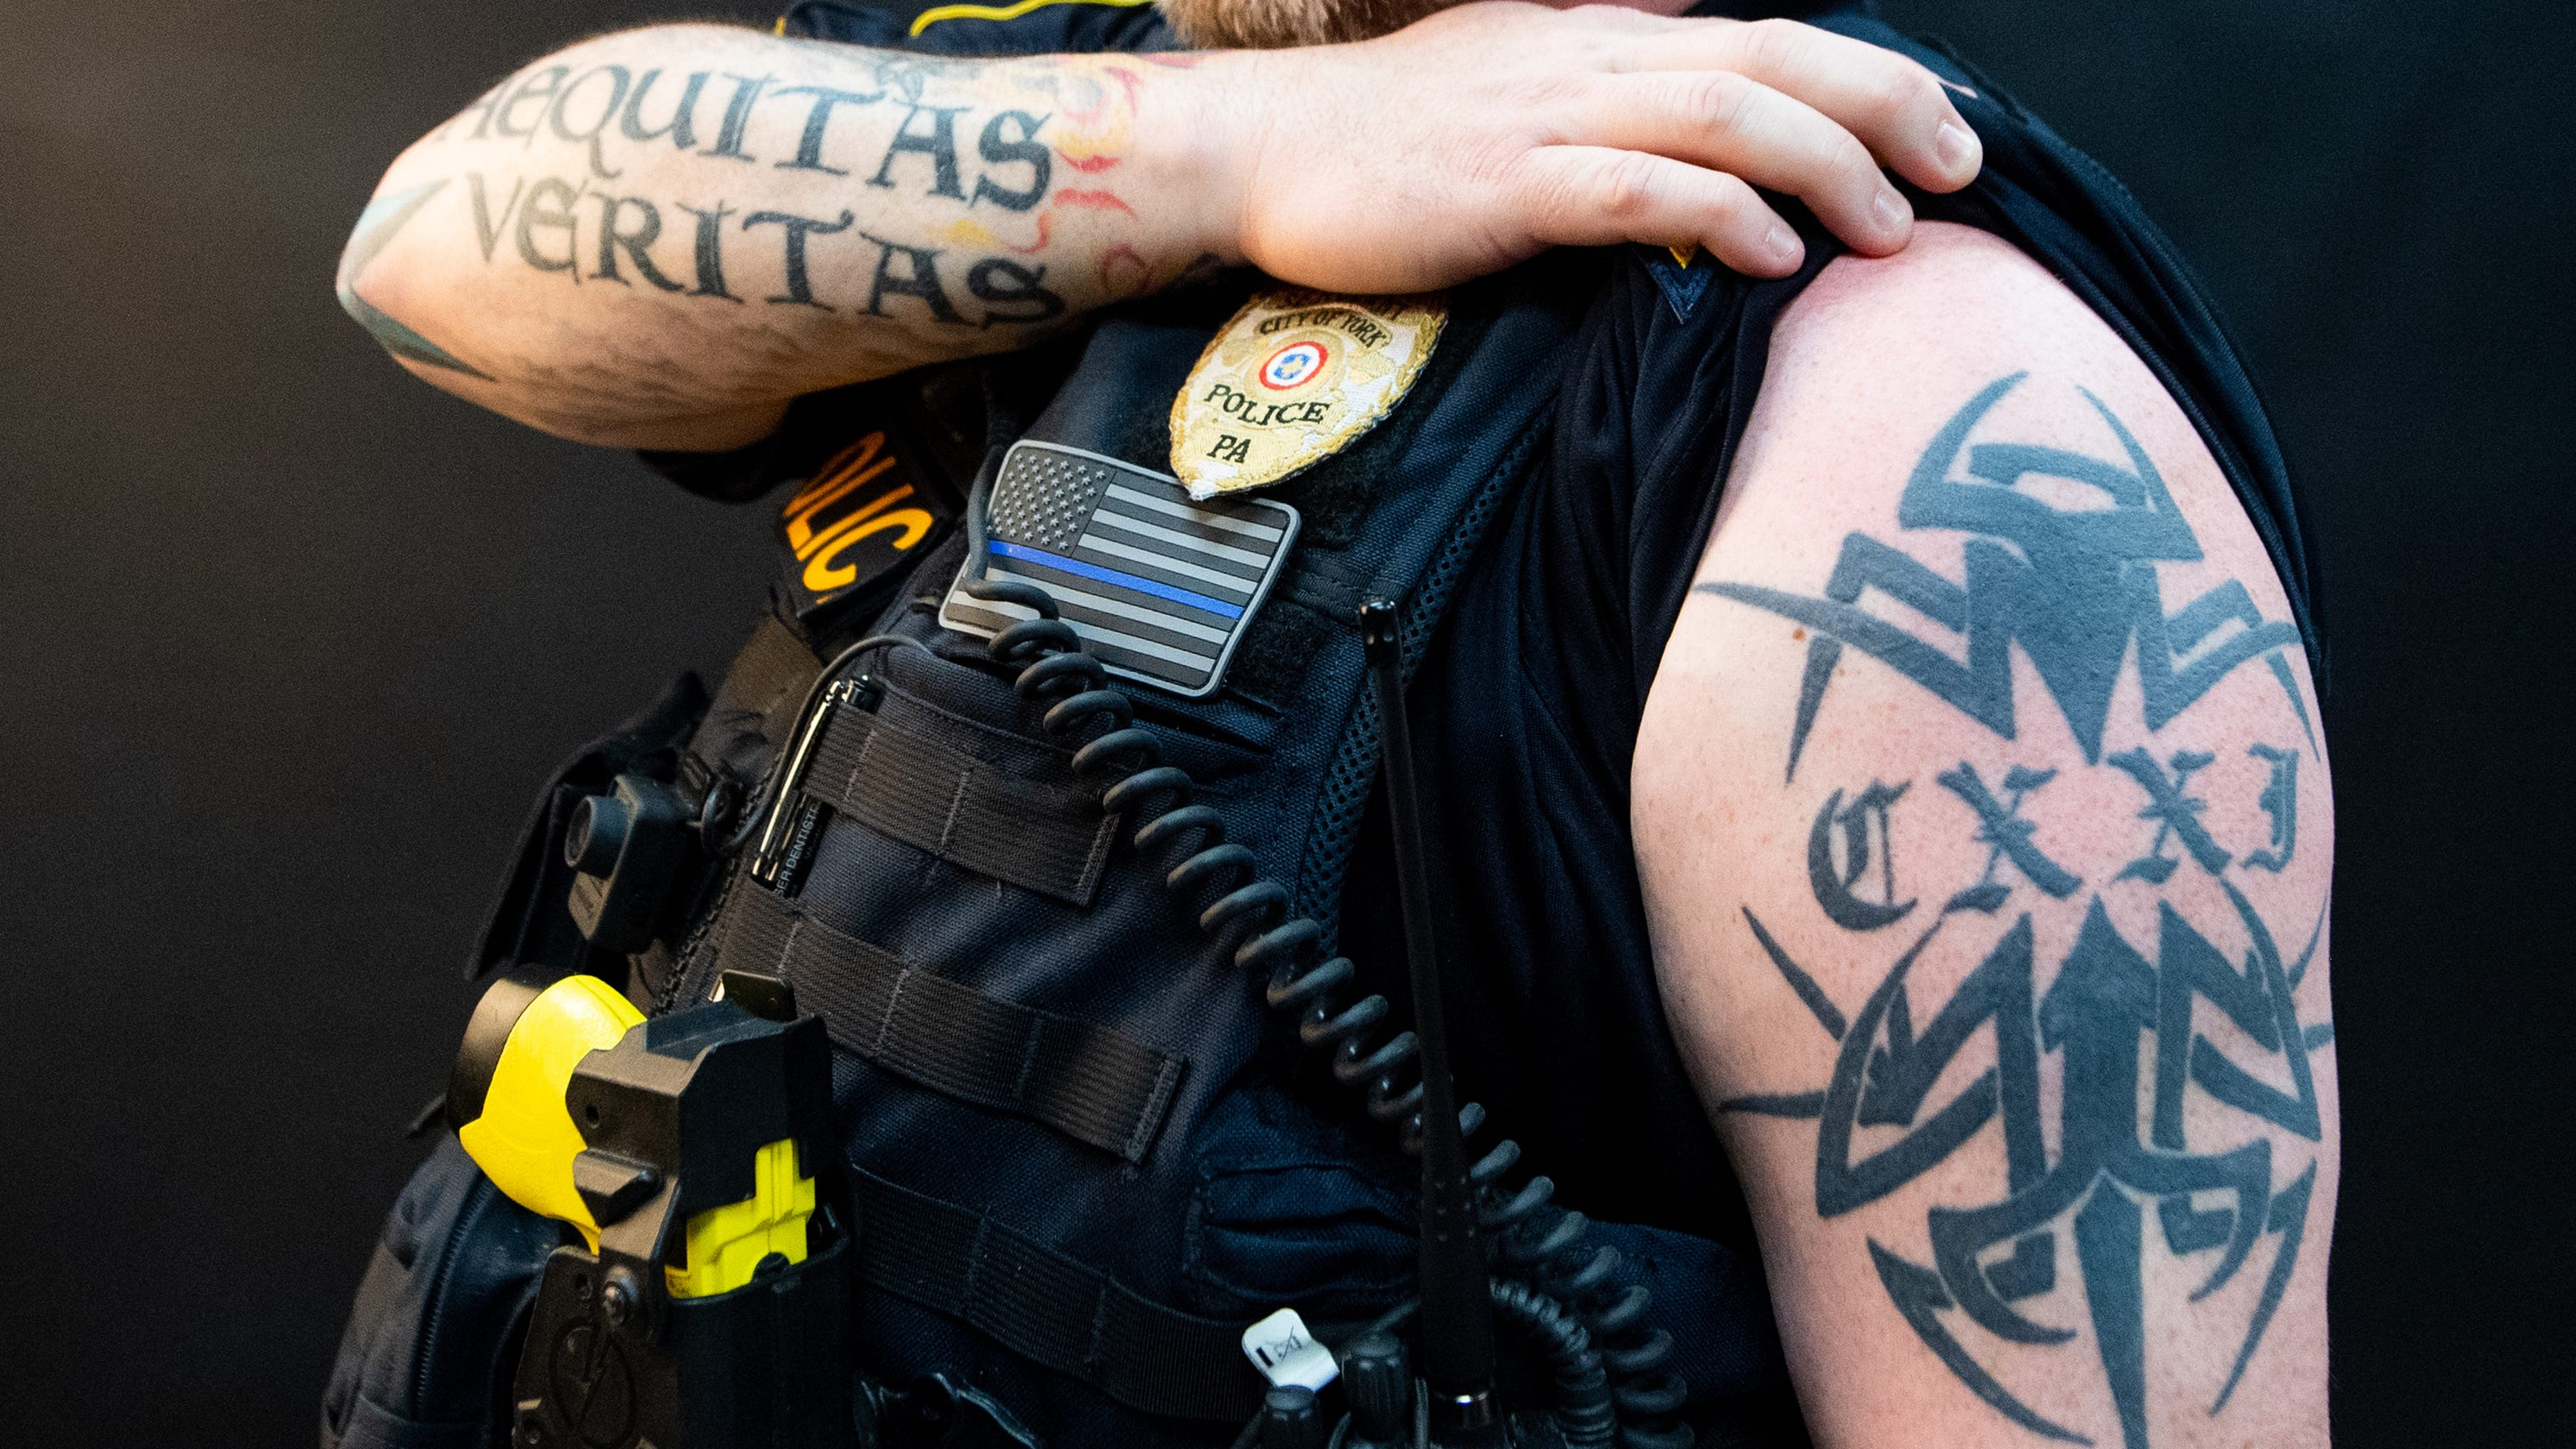 fc044b18e502b Police tattoos: Ink helps officers connect with community they serve